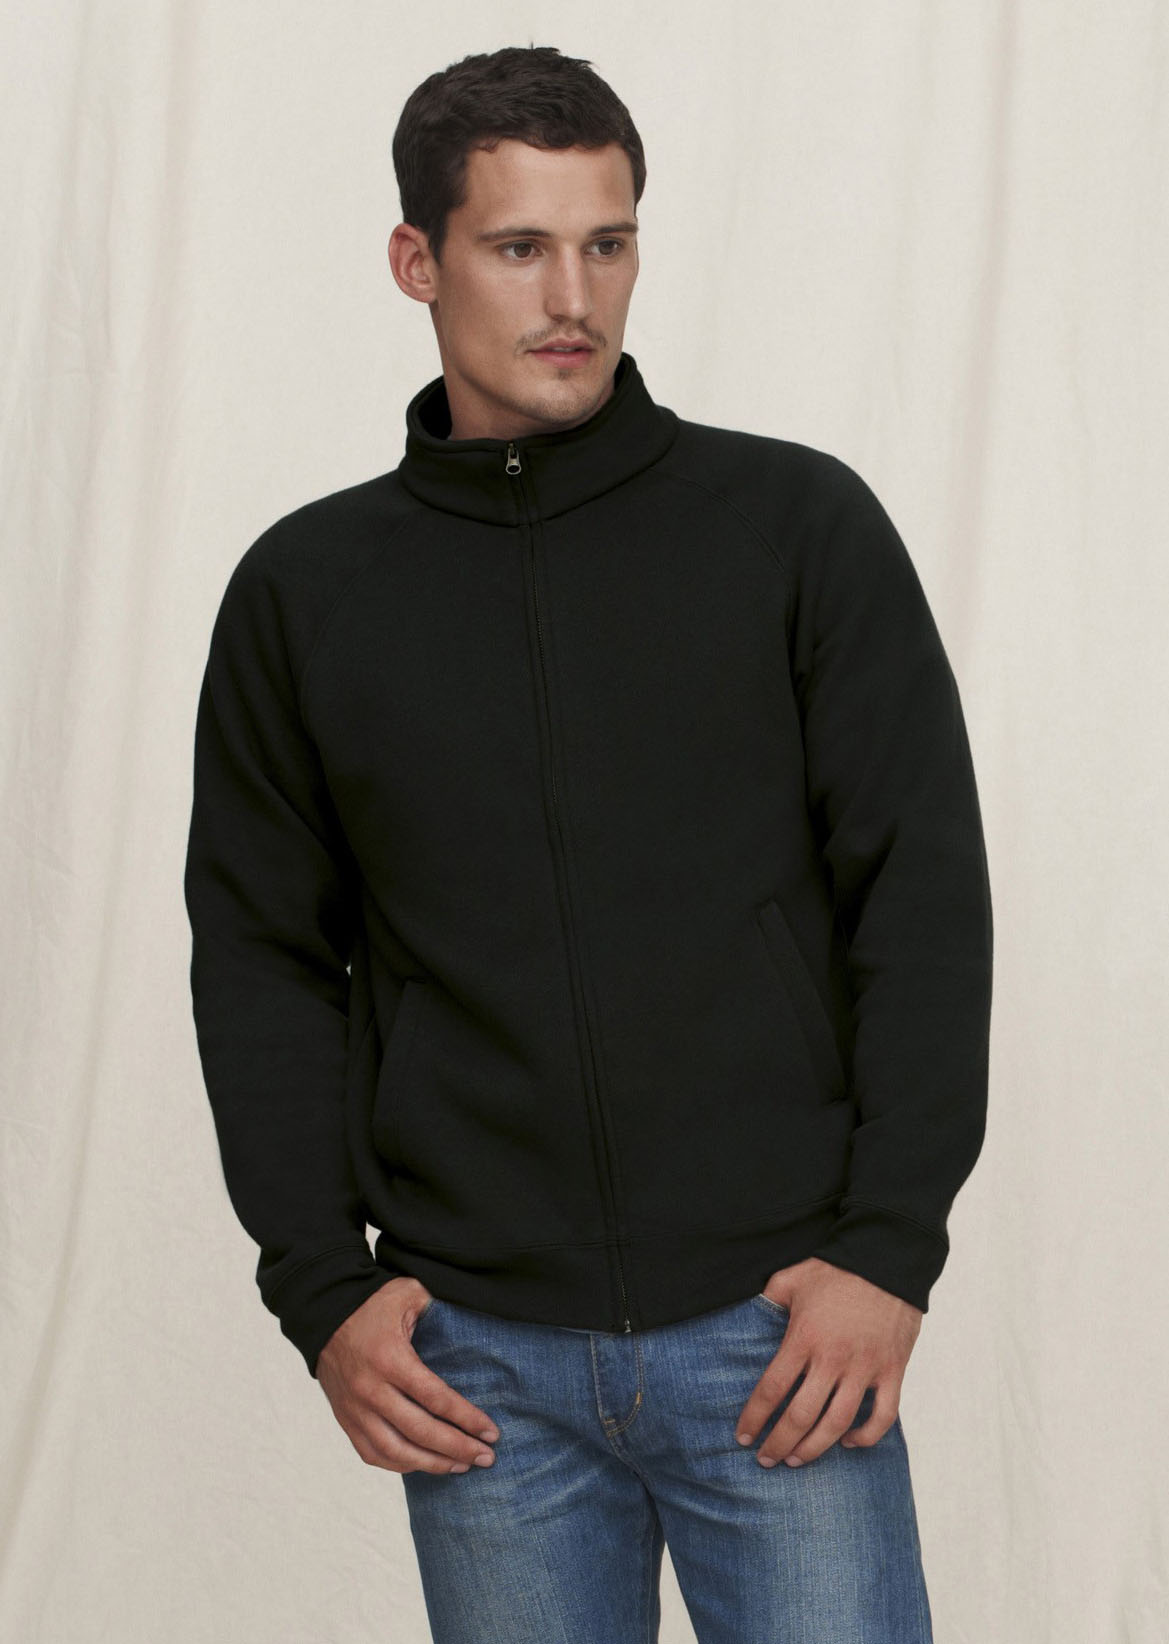 Fruit of the Loom Sweat Jacket SC62228 foto 1